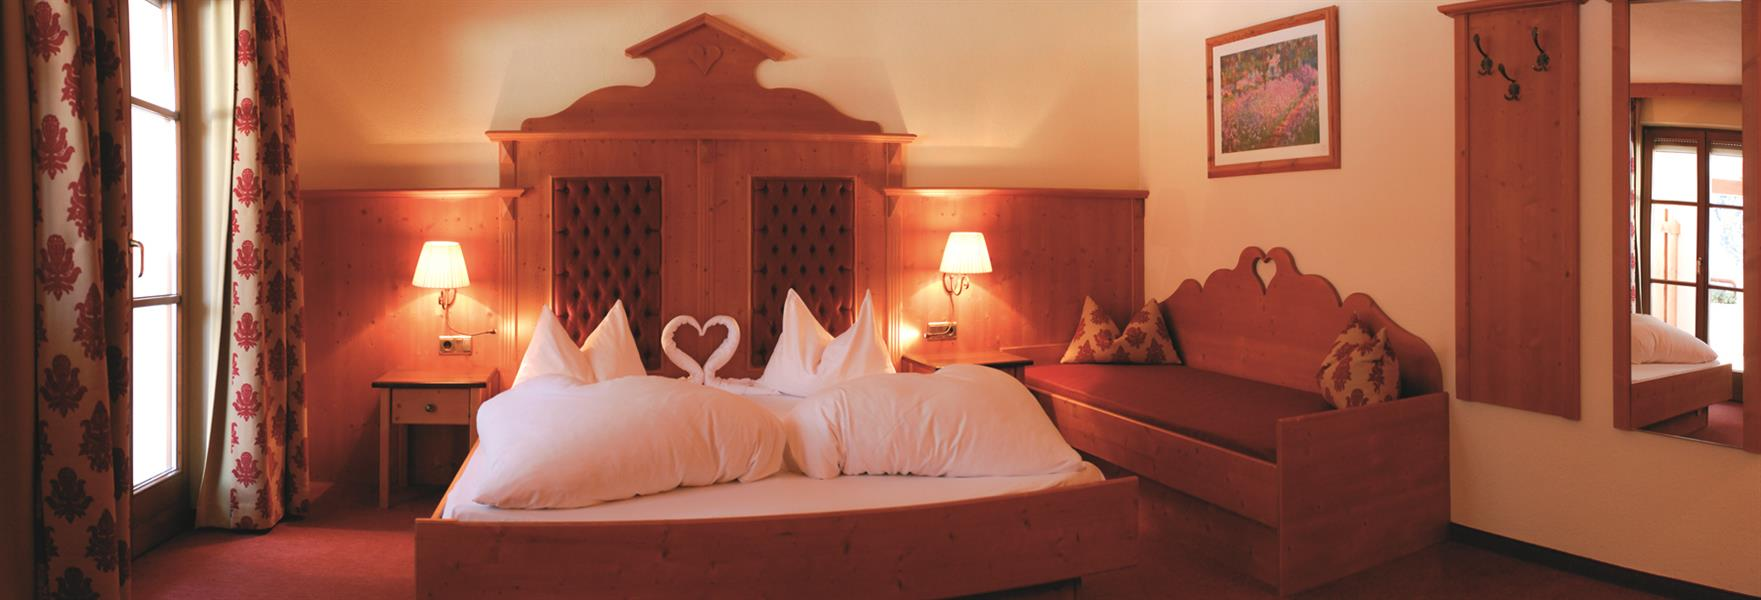 Alphotel tyrol valle isarco for Affitti cabina sole valle